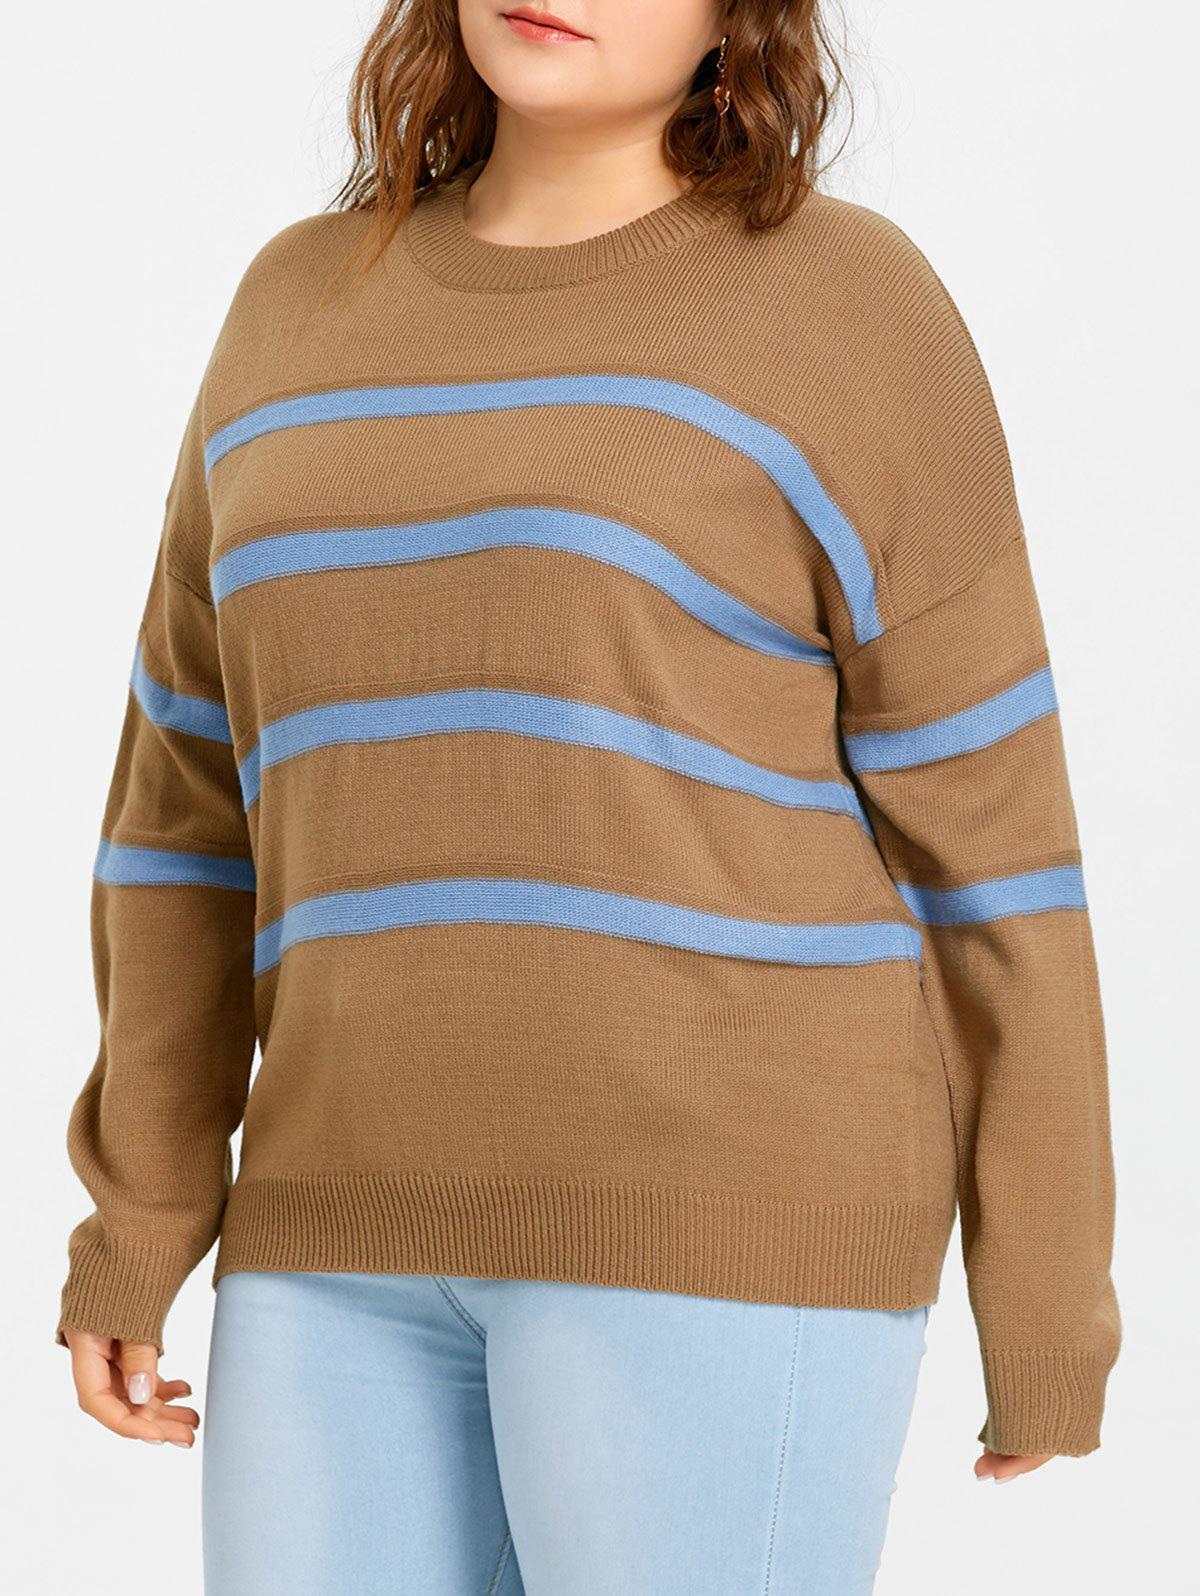 Store Plus Size Drop Shoulder Striped Jumper Sweater